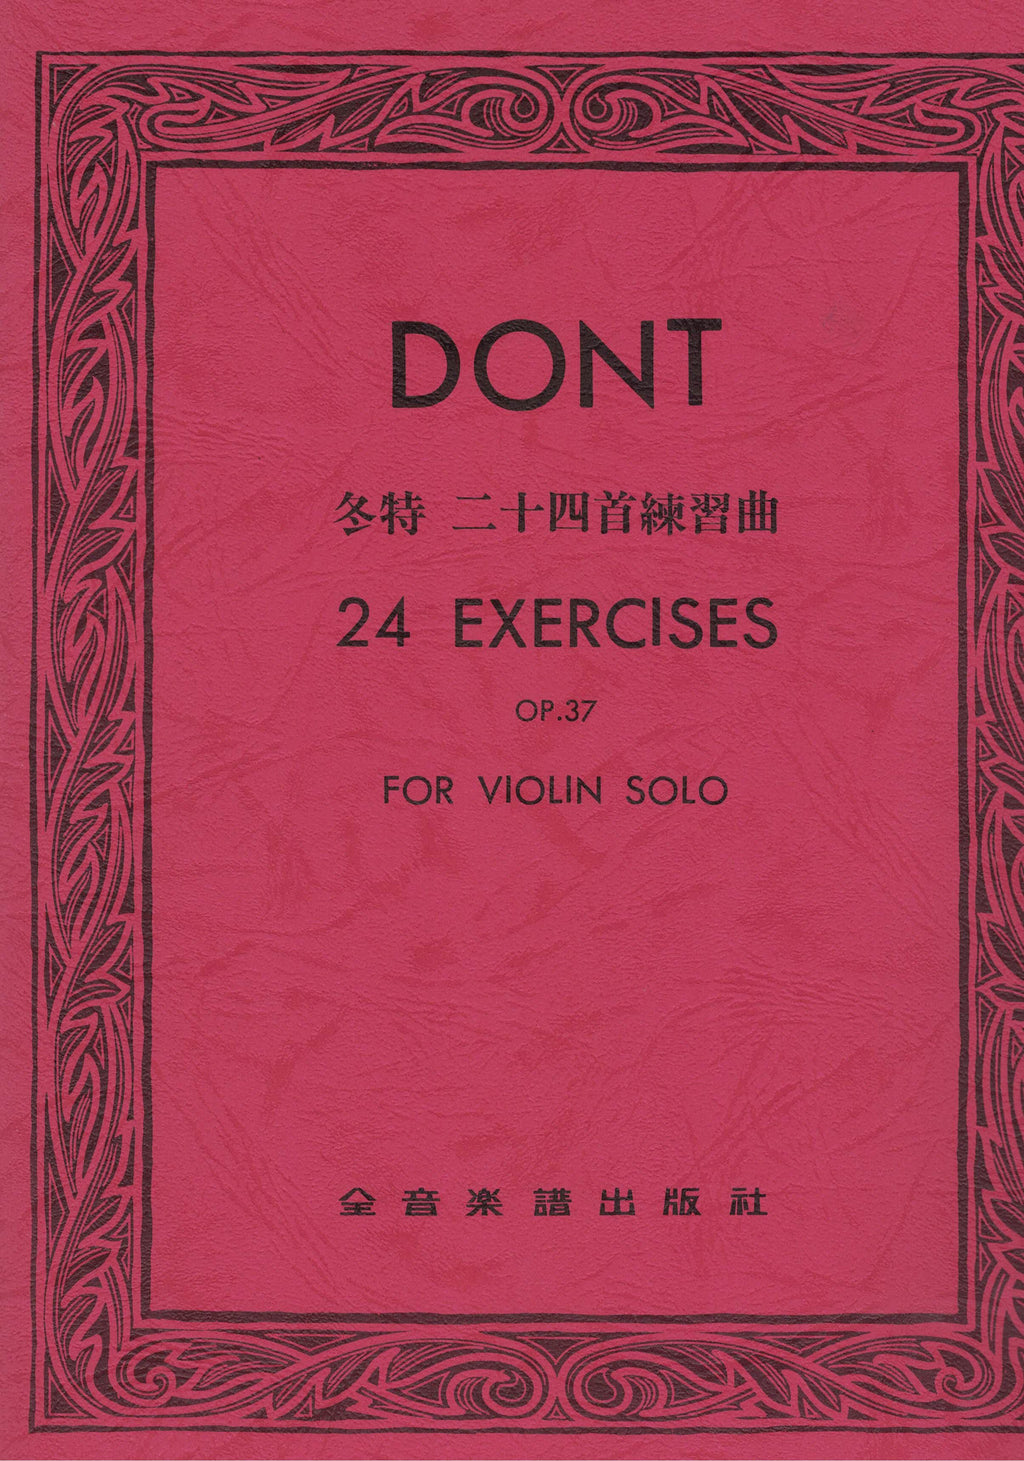 DONT- 24 Exercises Op.37 for Violin Solo - Music Creators Online